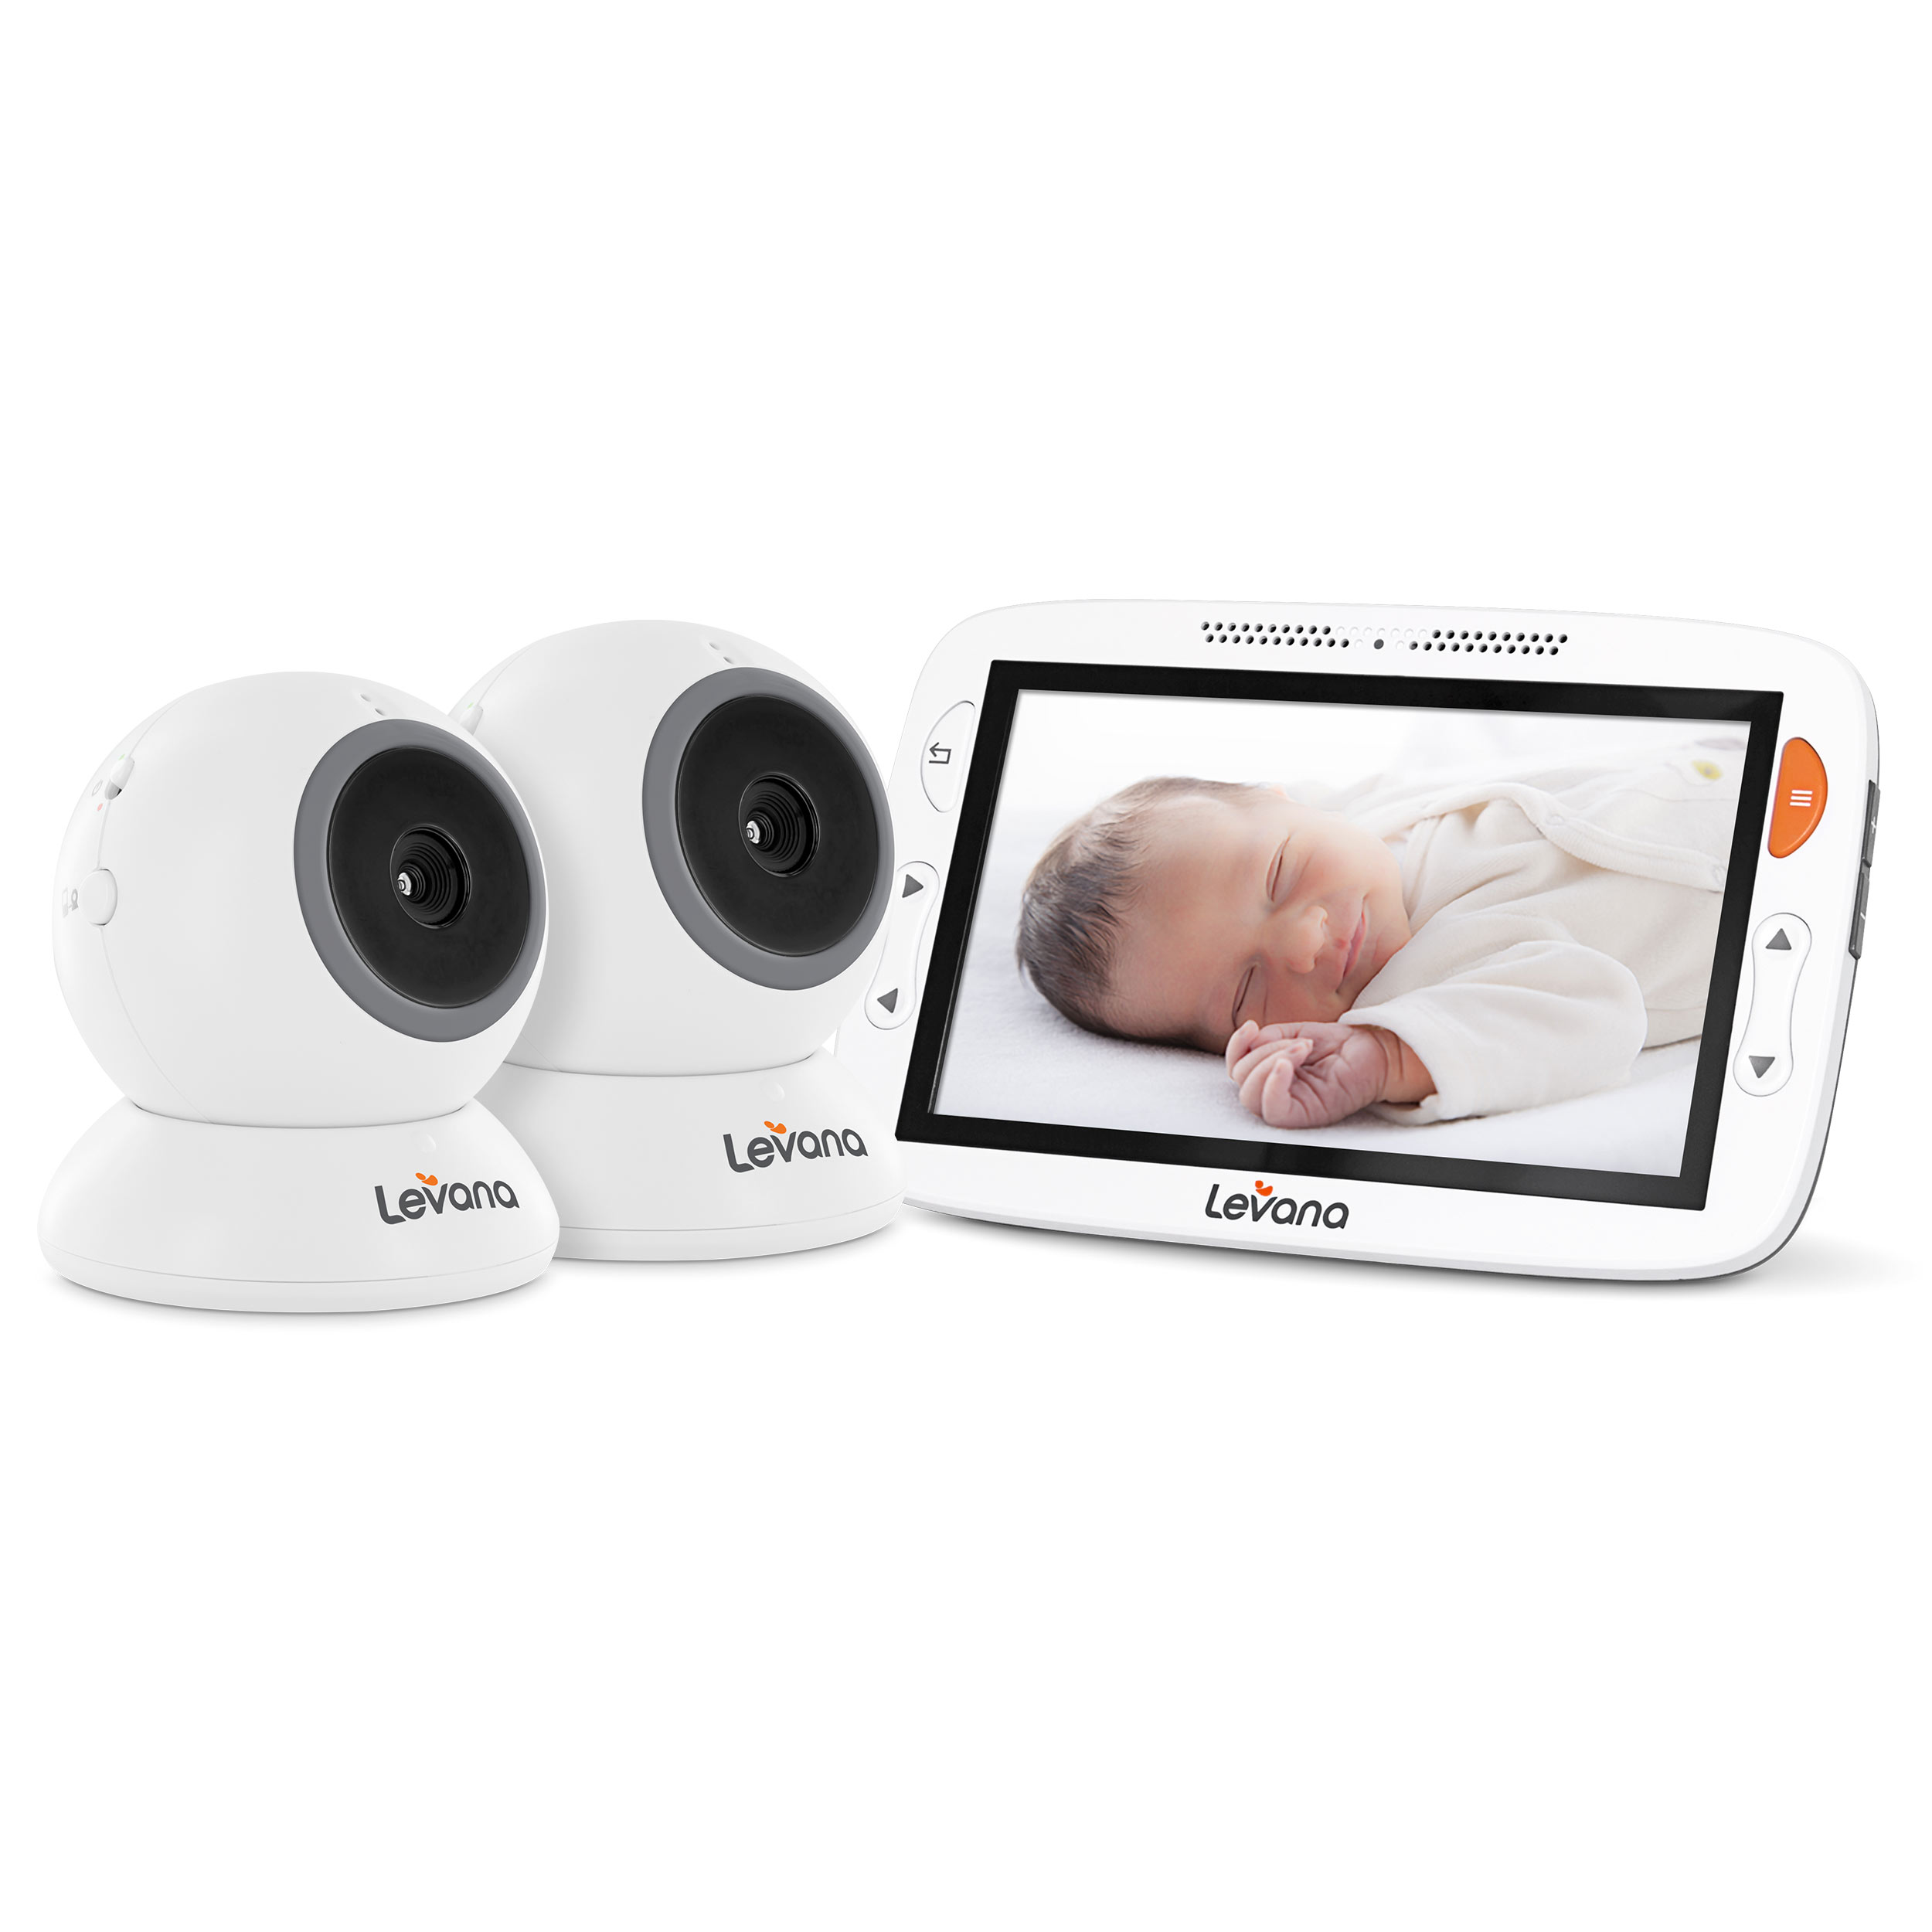 Levana Alexa 5� LCD Video Baby Monitor with Two Cameras, 12 Hour Battery Life, Temperature Monitoring, Feeding... by Levana